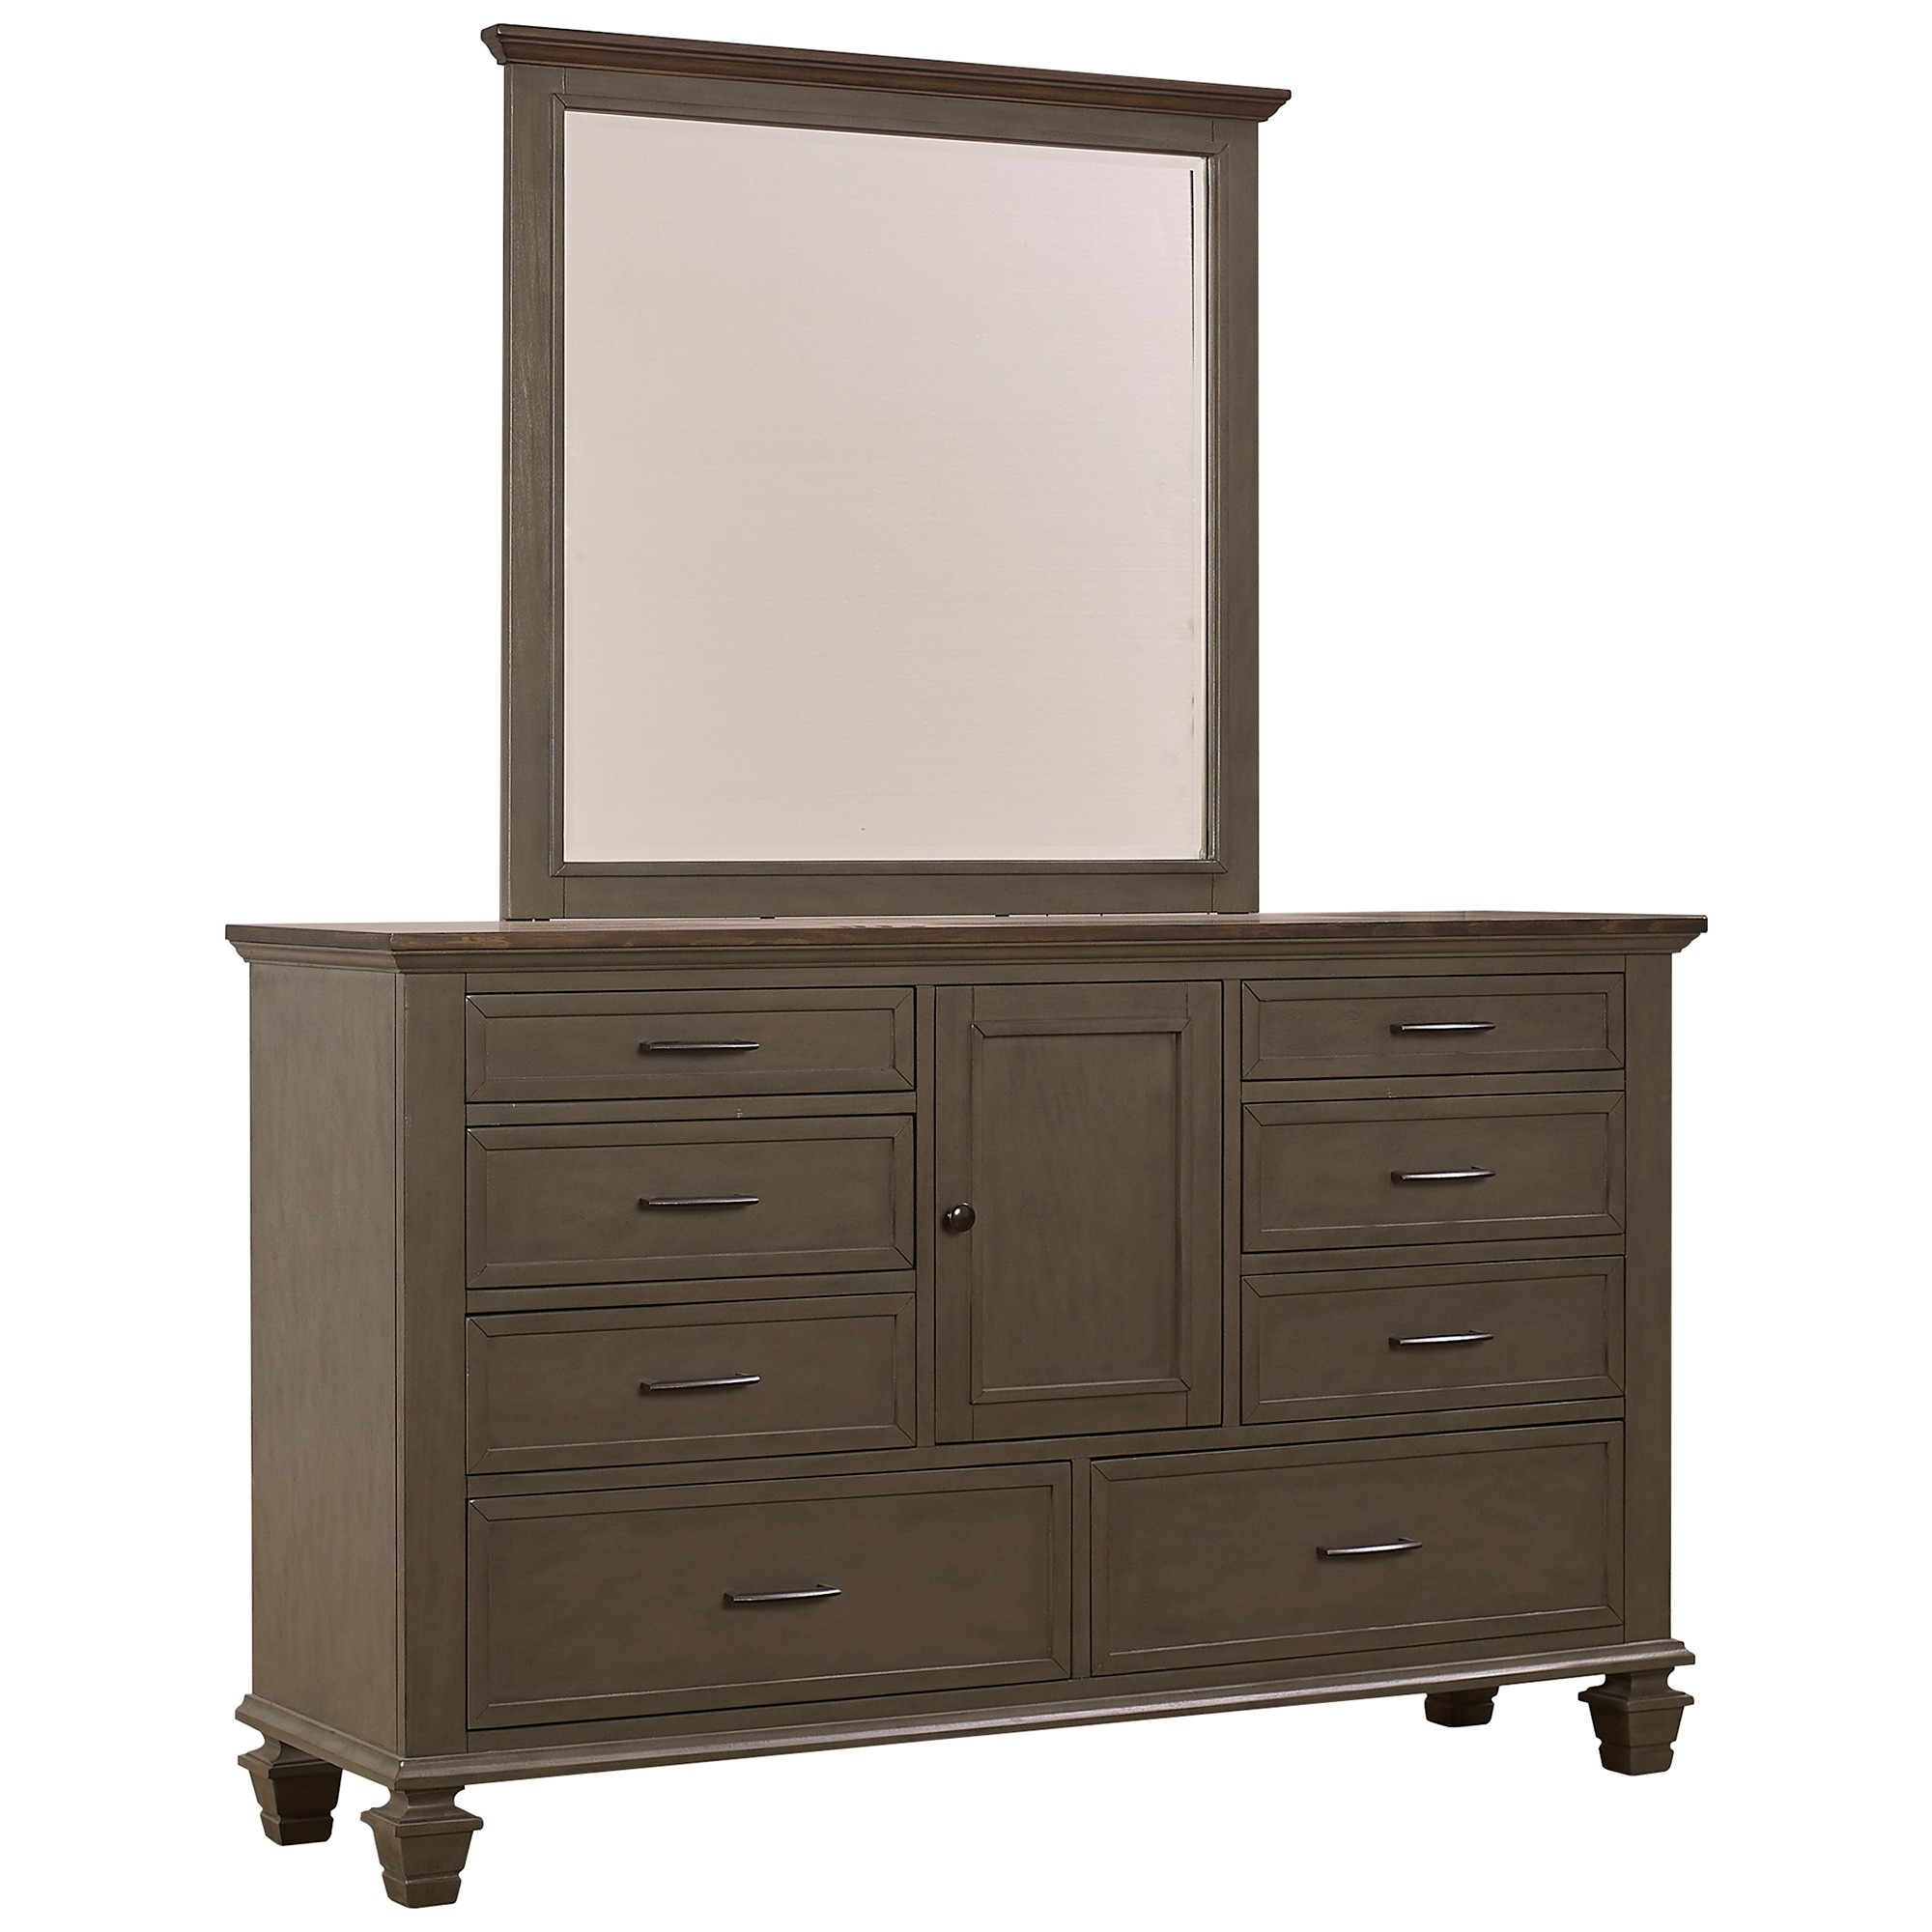 Telfer Poplar Timber 1 Door 8 Drawer Dresser with Mirror